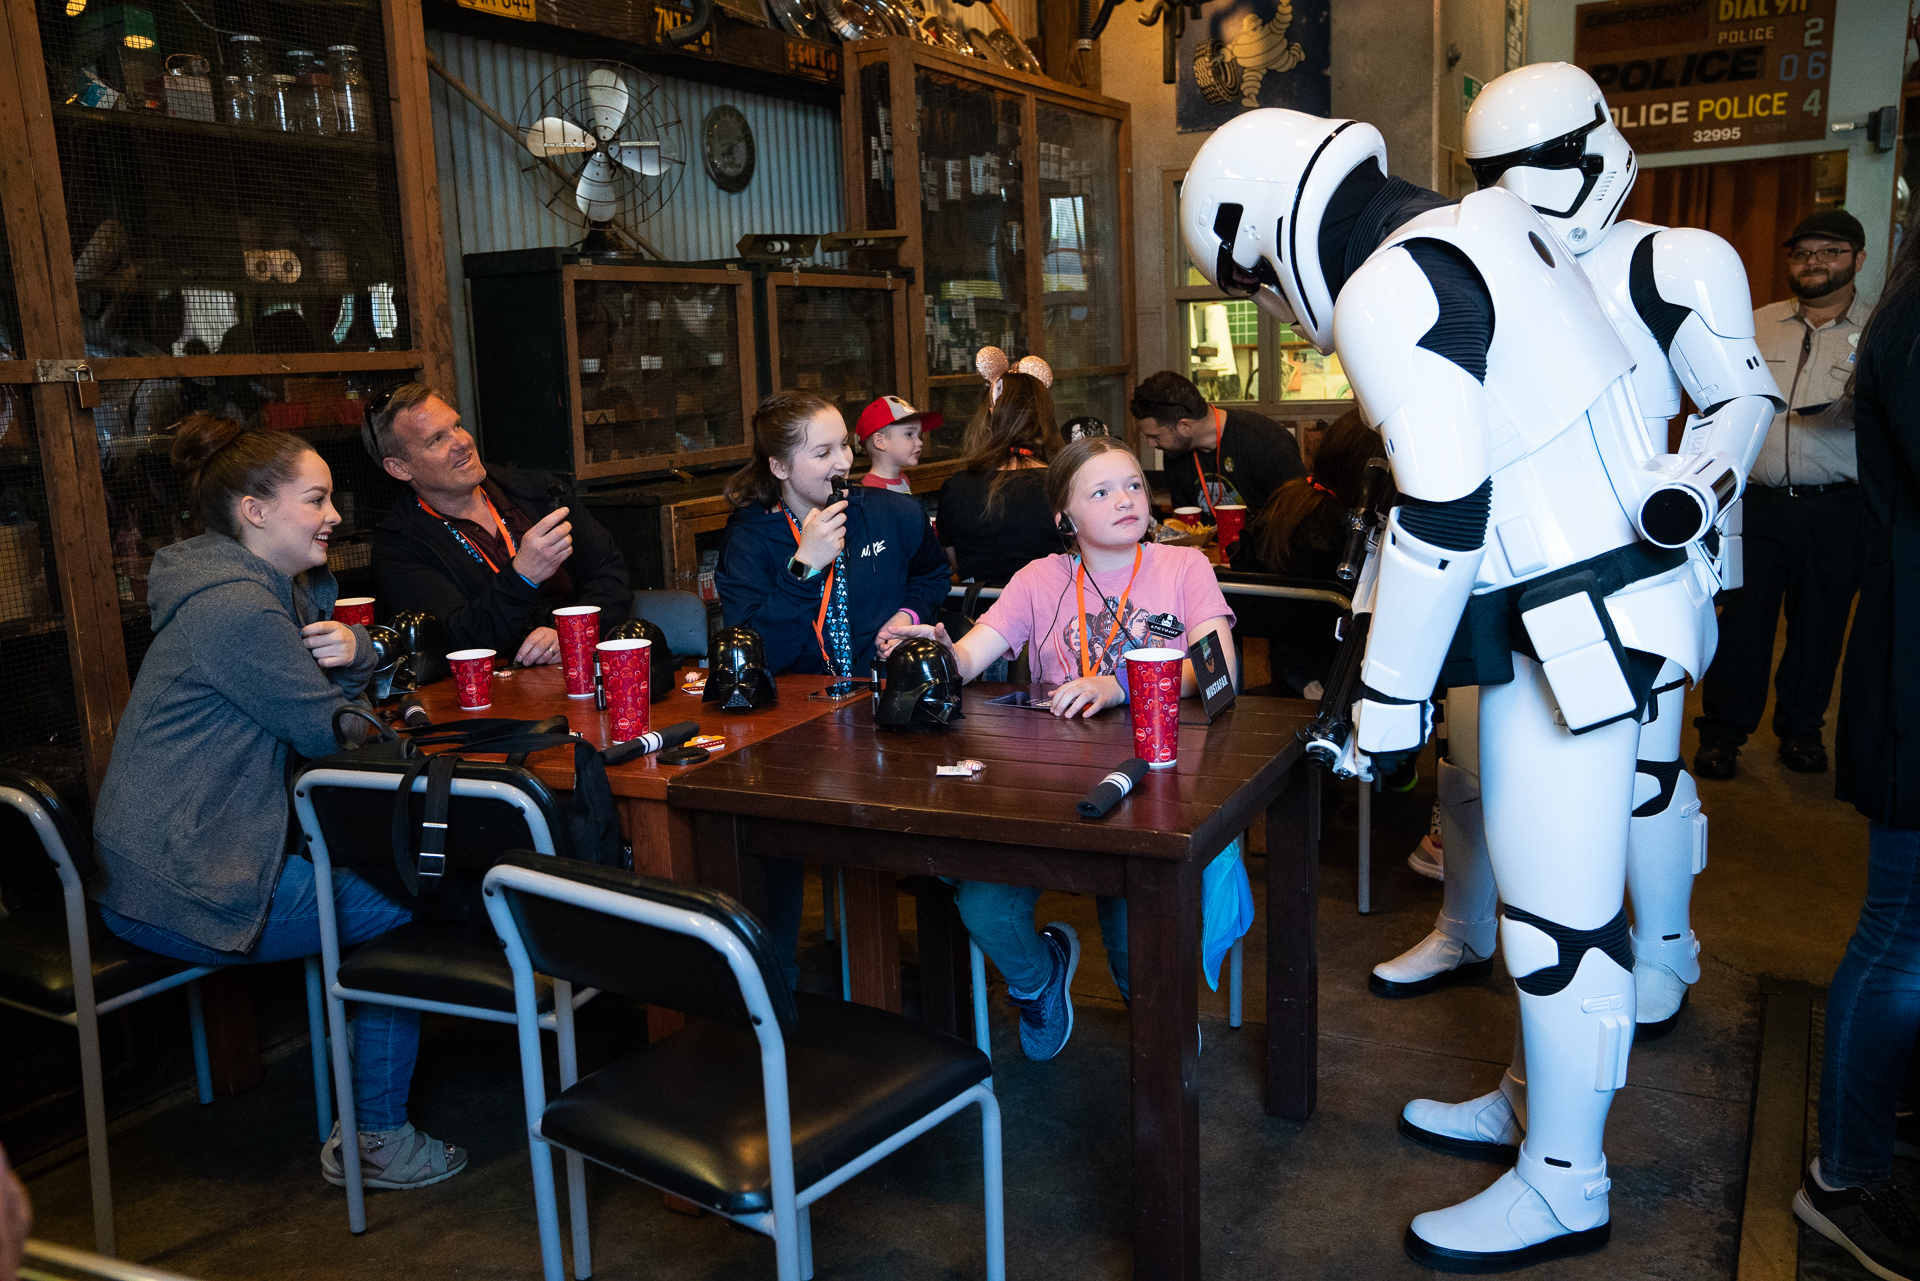 Family receiving a visit from Stormtroopers during a lunch break while on a VIP Star Wars tour at Disney's Hollywood Studios at Walt Disney World